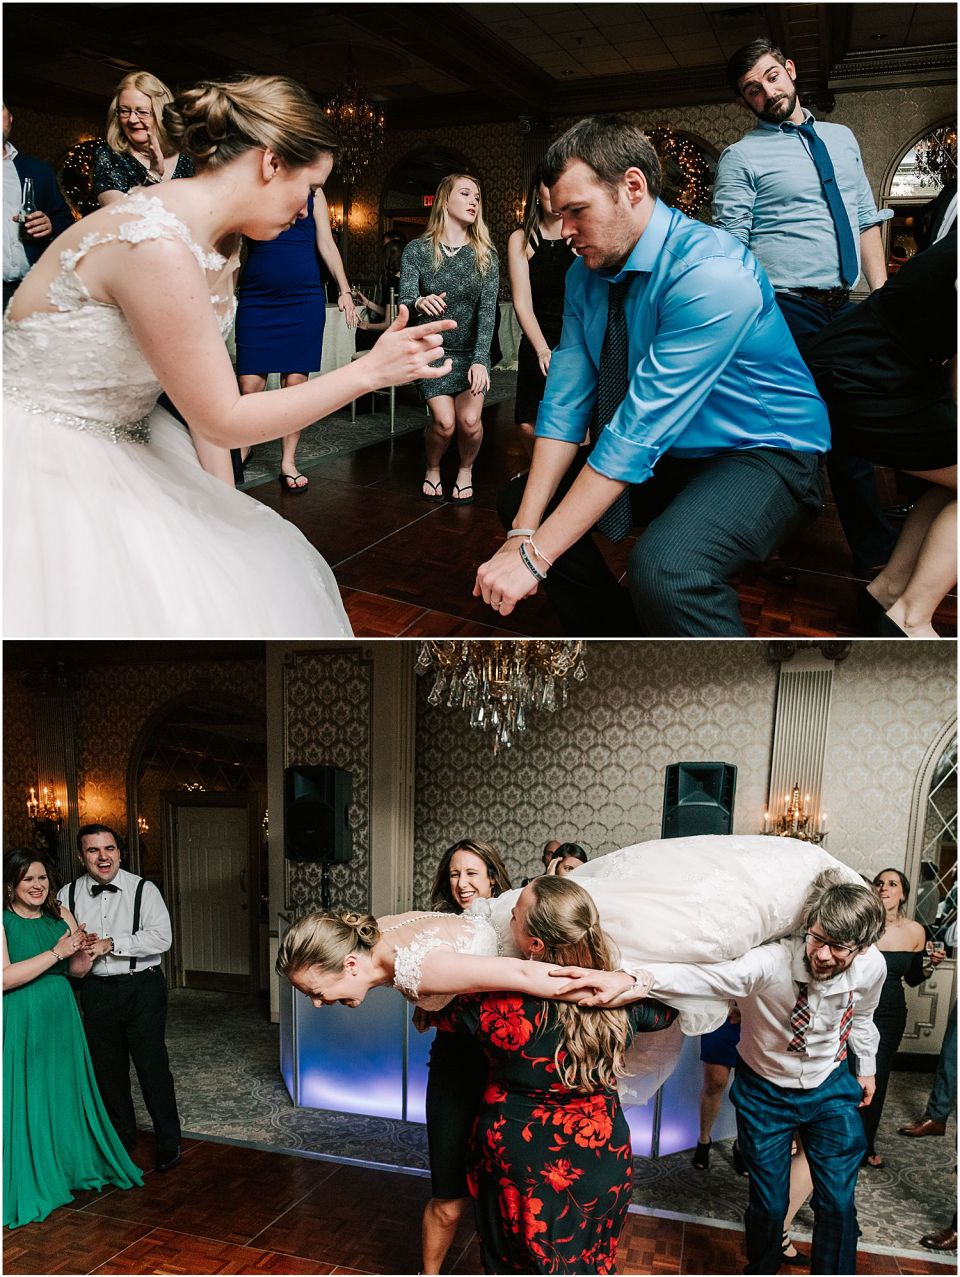 Party Dancing at the Madison Hotel wedding venue